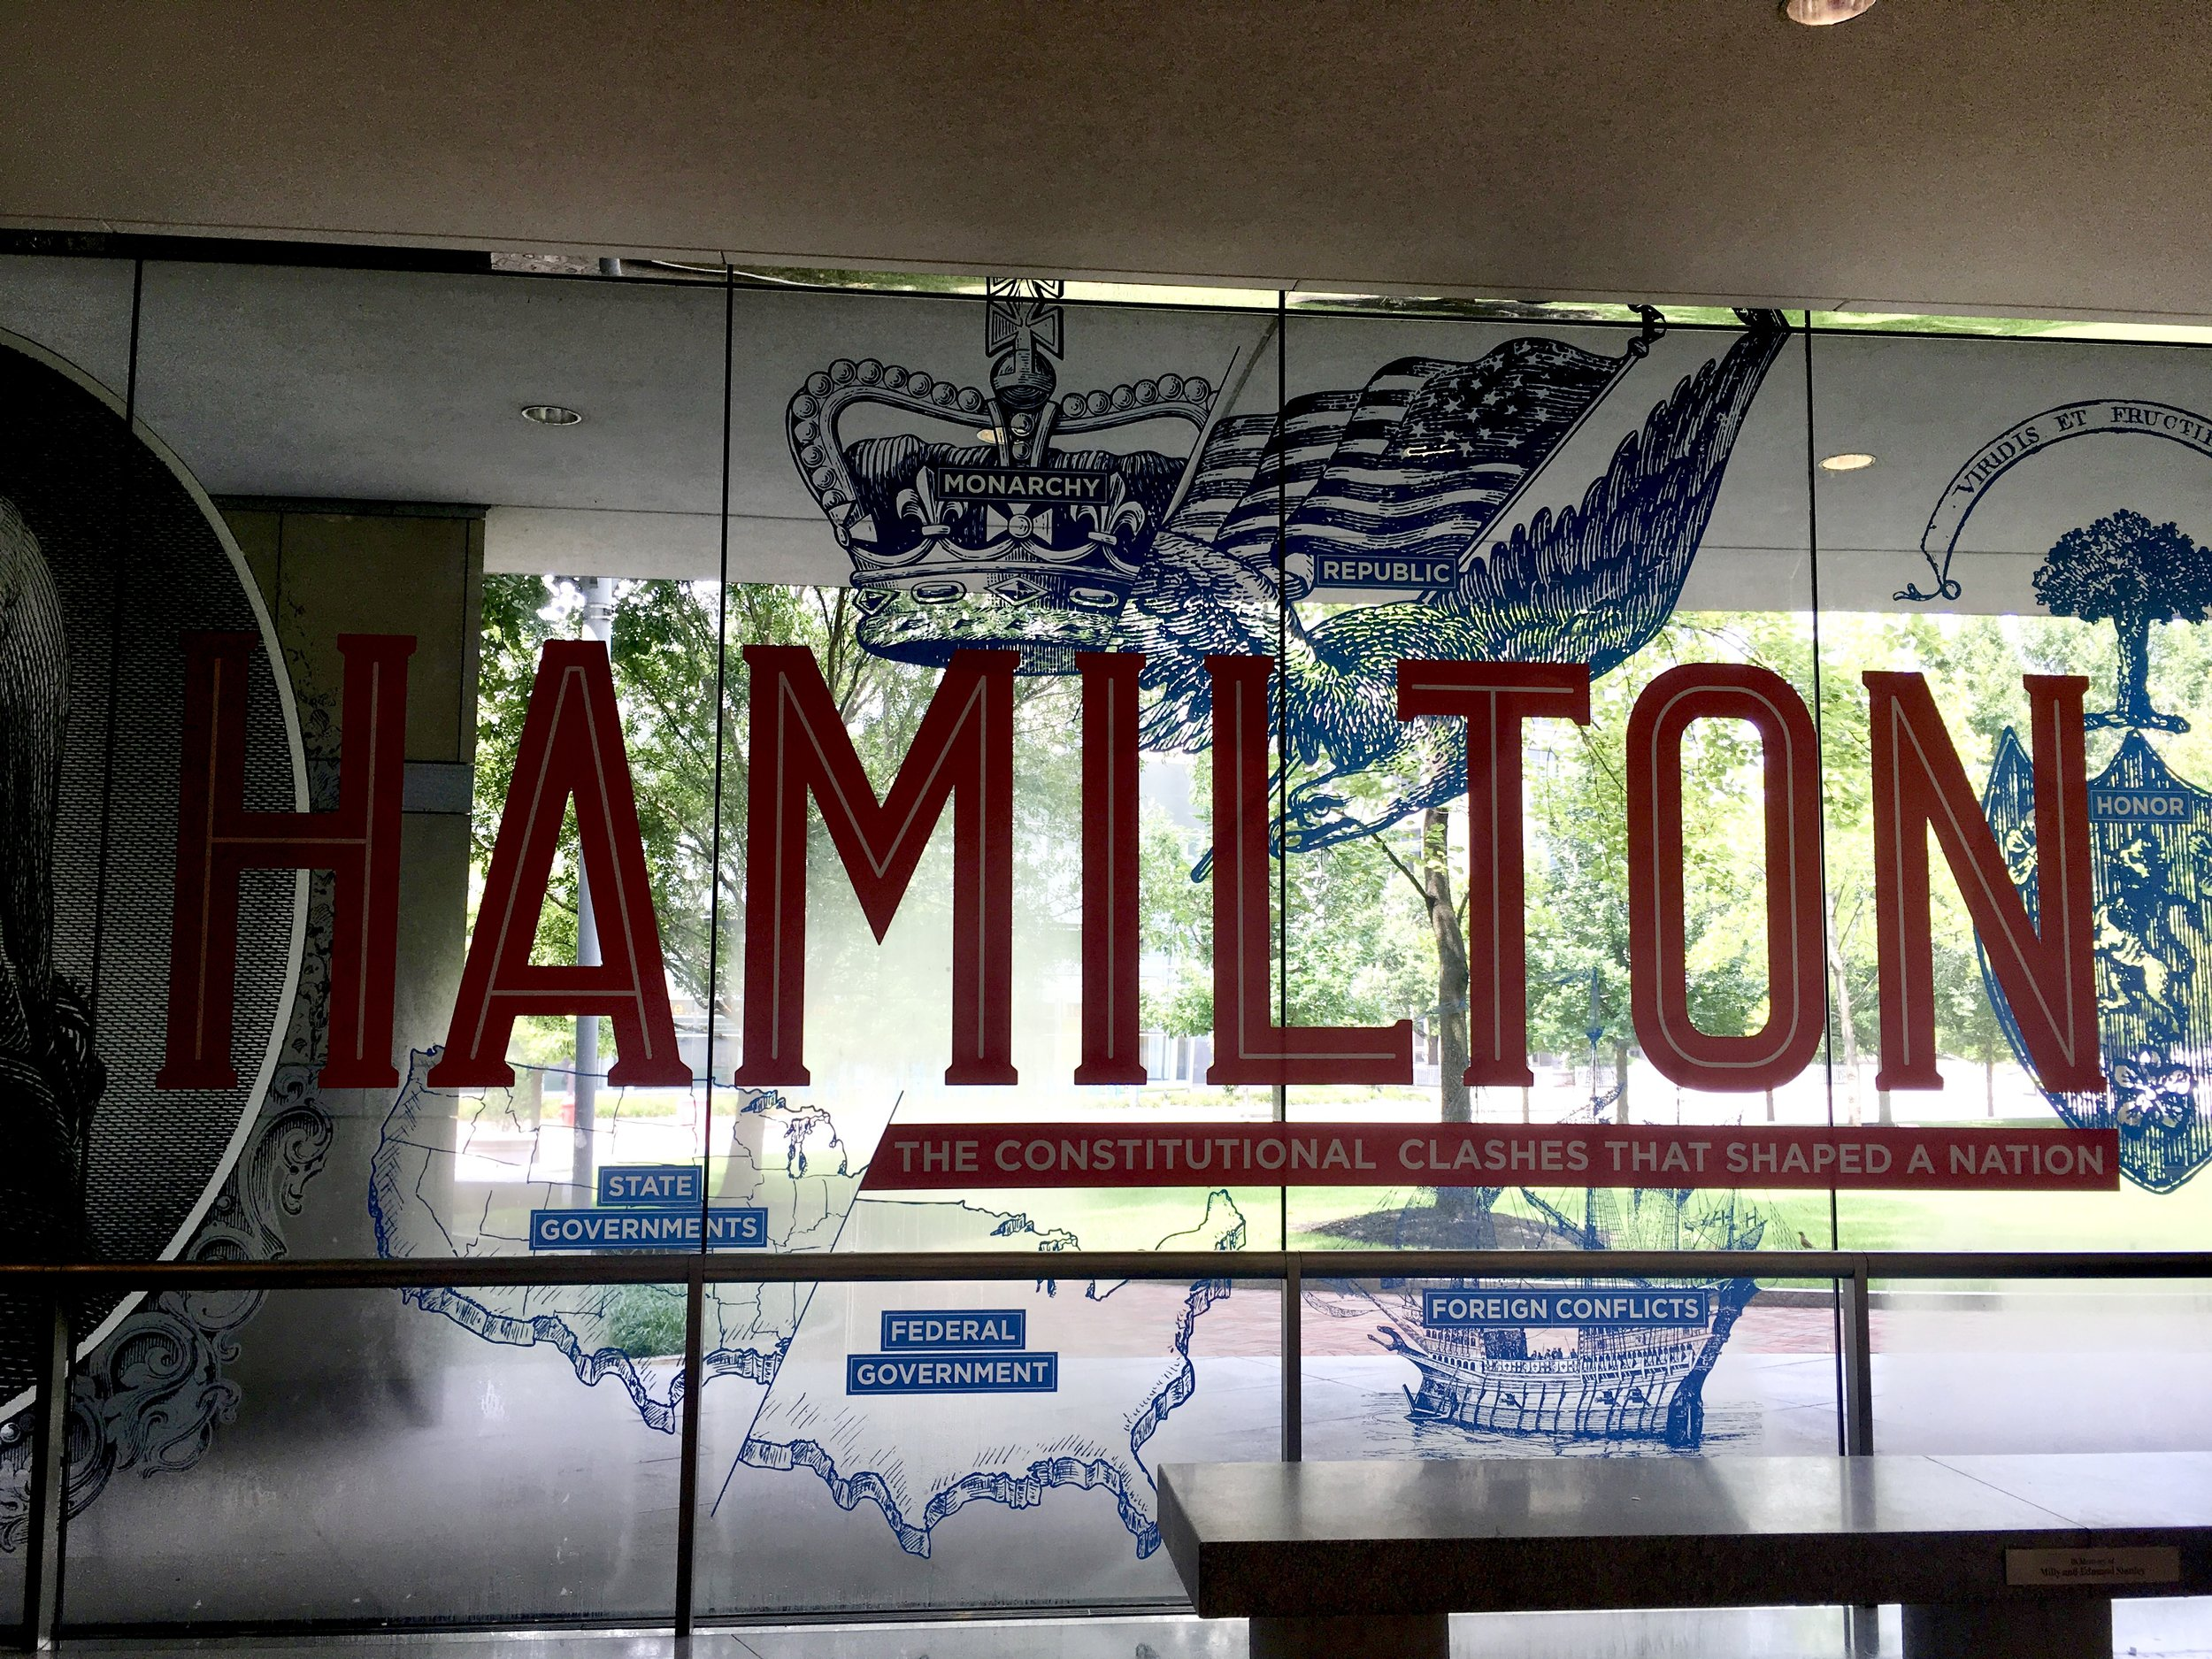 Hamilton Exhibit in the National Constitution Center